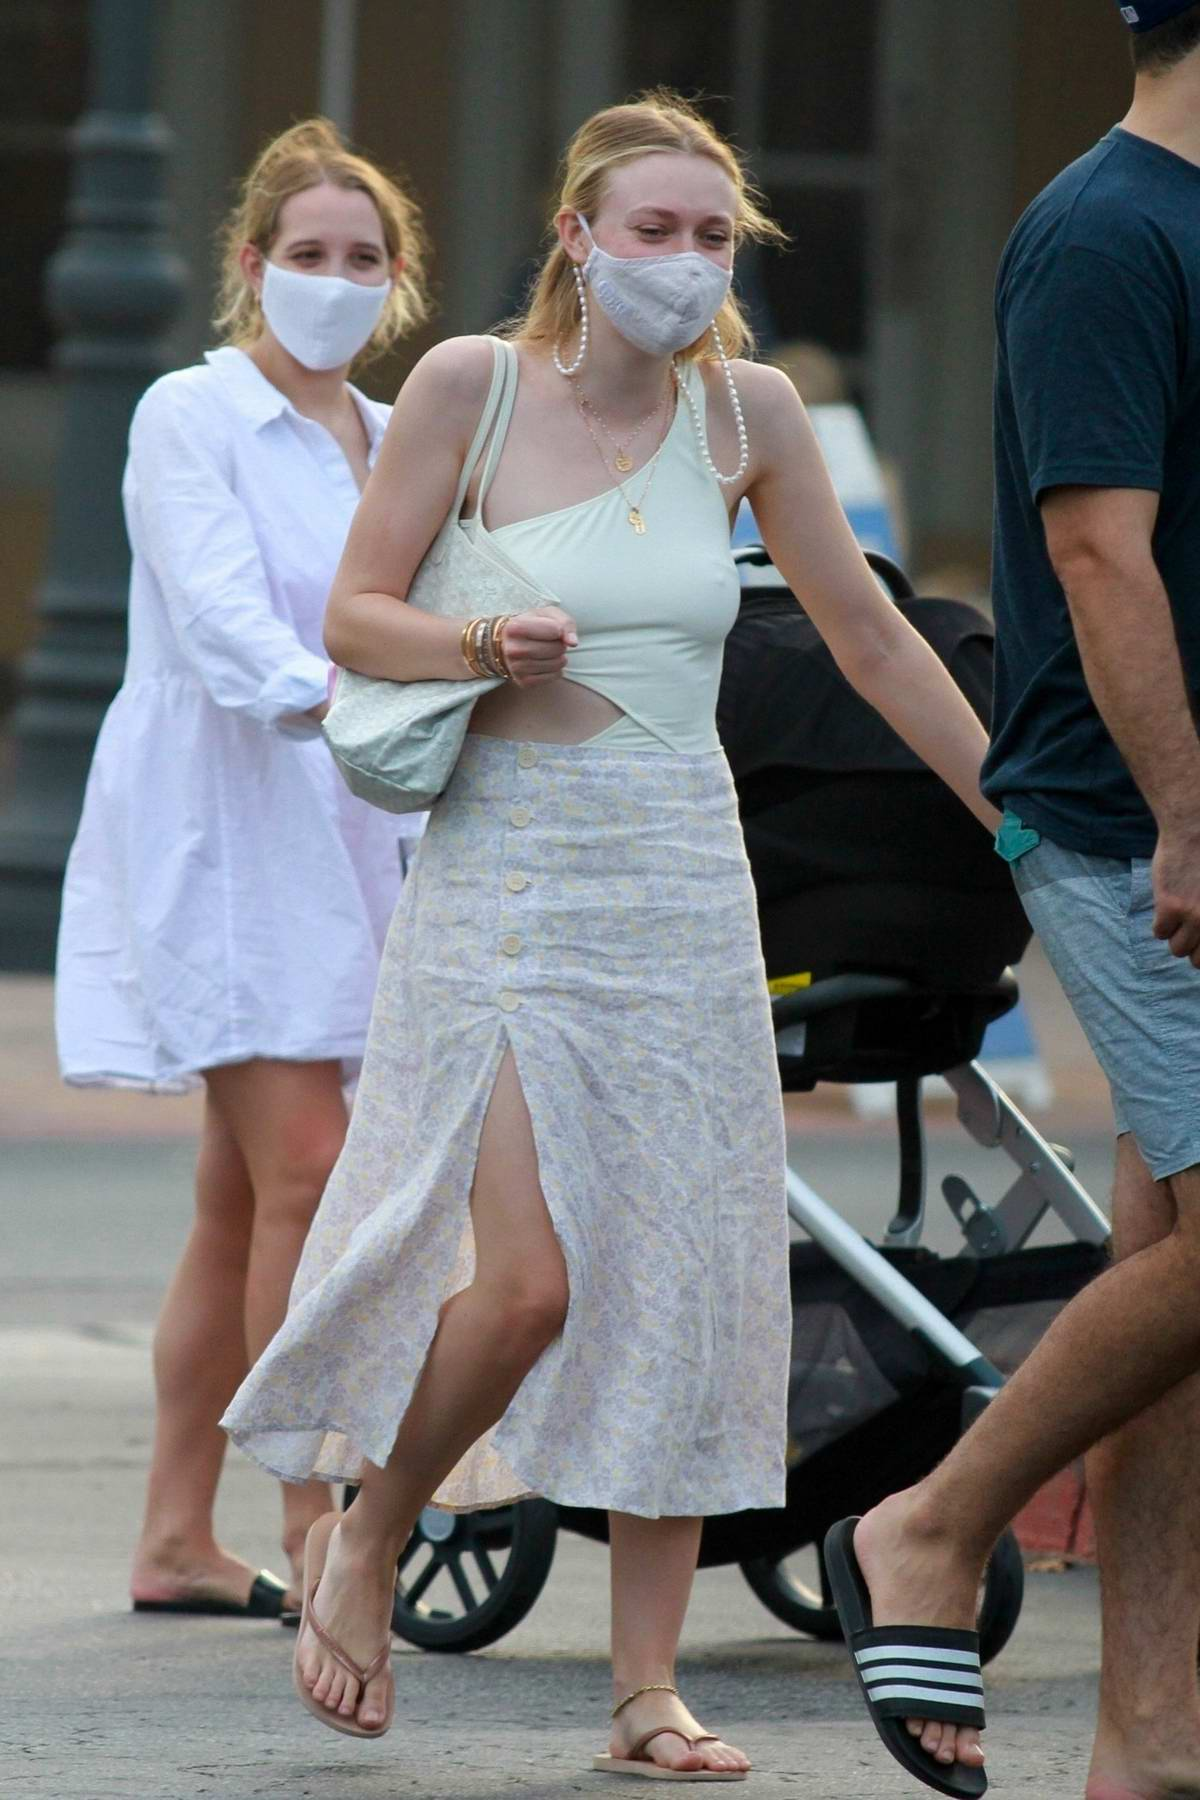 Dakota Fanning goes out for ice cream with friends in Malibu, California